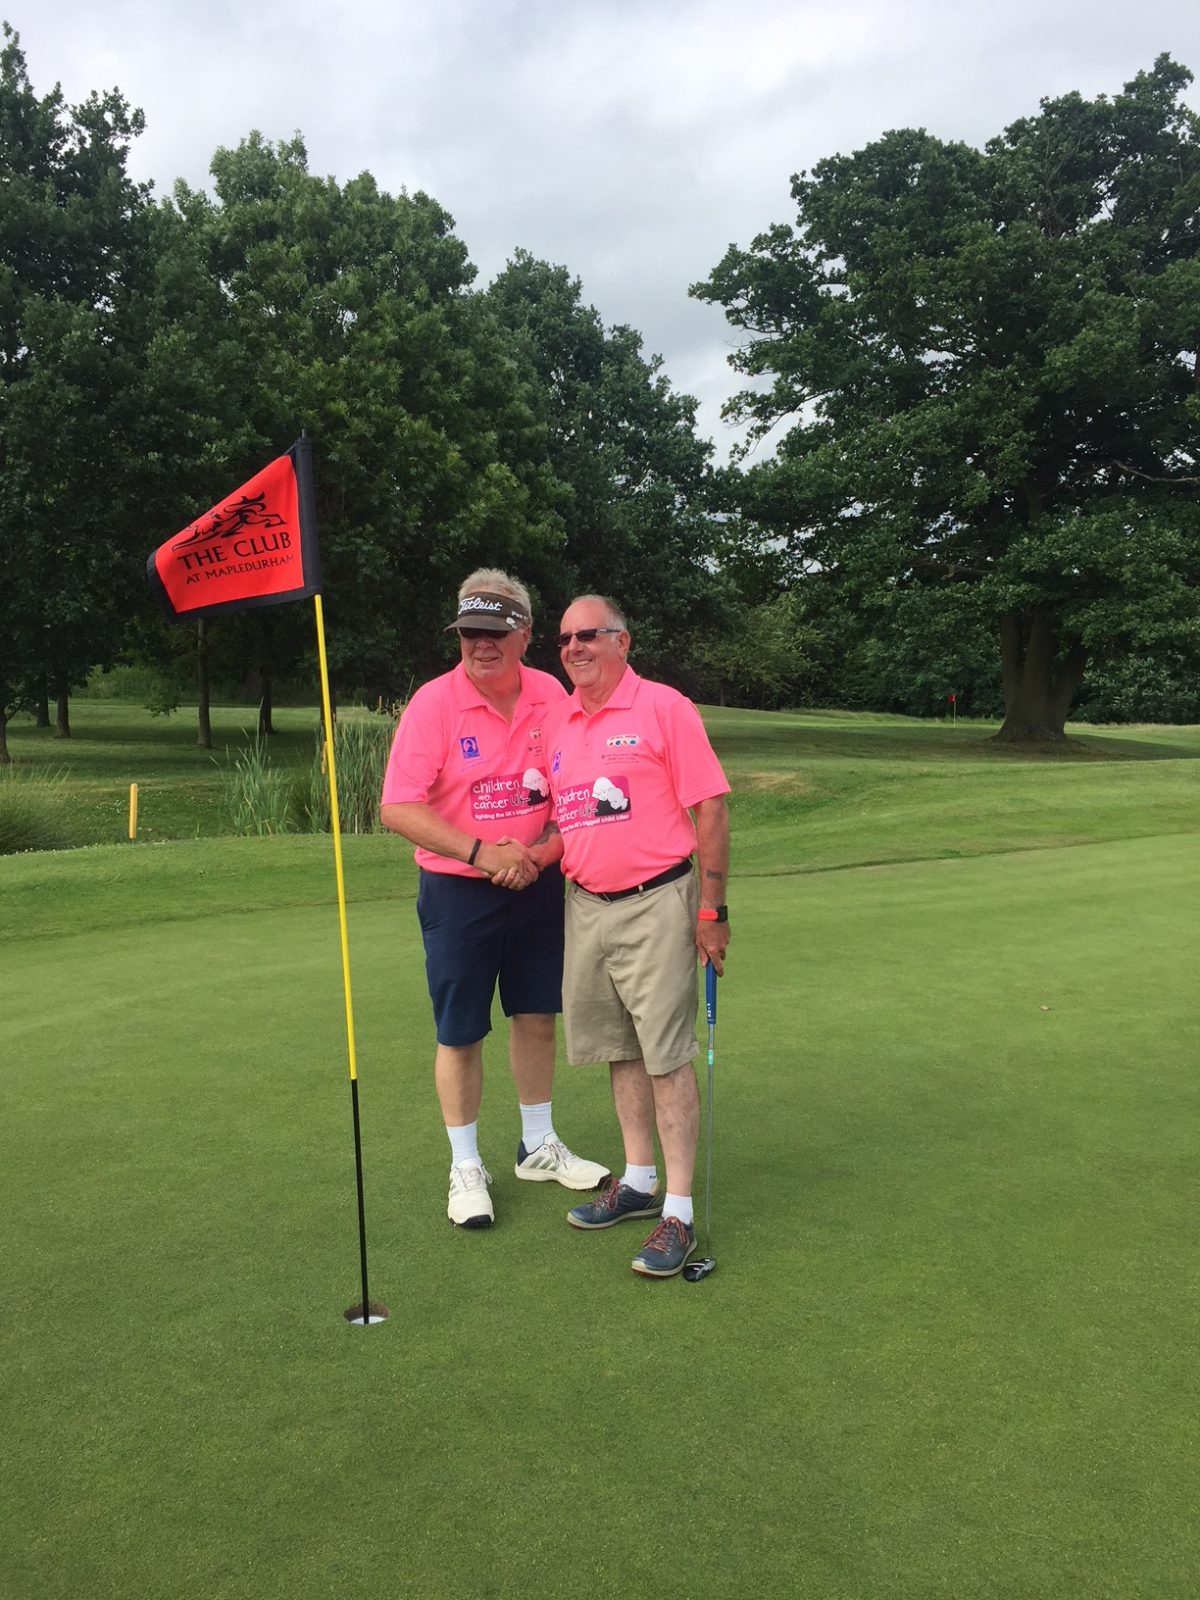 Mike Ford & Mapledurham golf club Captain, Frank O'Neill woke up at the crack of dawn Saturday 16th June to start their epic task. 100 holes of golf in one day. By 9am the duo had already completed 36 holes. By 5.15pm it was all over. 100 holes done within 13 hours. The pair had … Continue reading